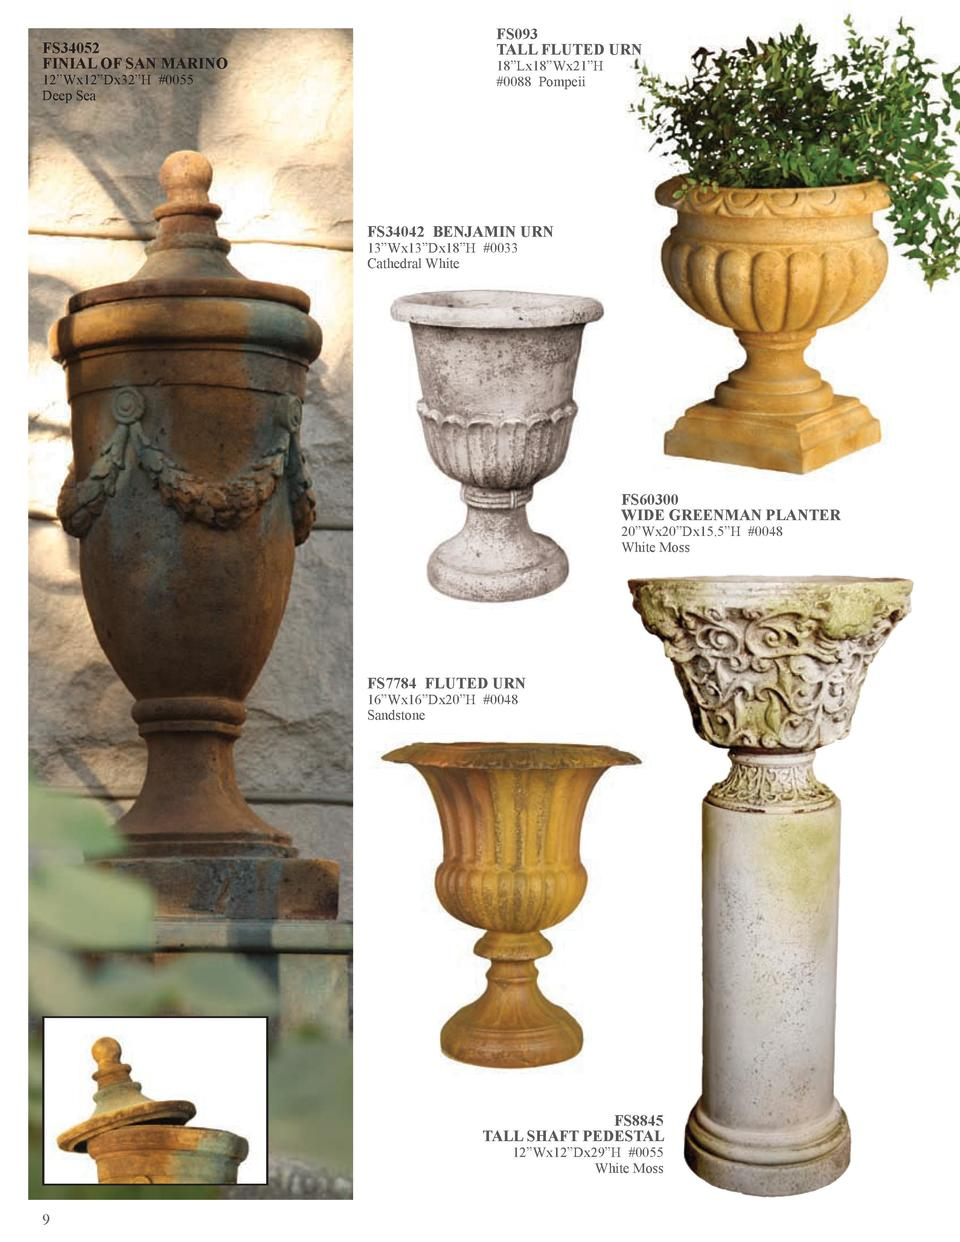 FS34052 FINIAL OF SAN MARINO 12   Wx12   Dx32   H  0055 Deep Sea  FS093 TALL FLUTED URN 18   Lx18   Wx21   H  0088 Pompeii...